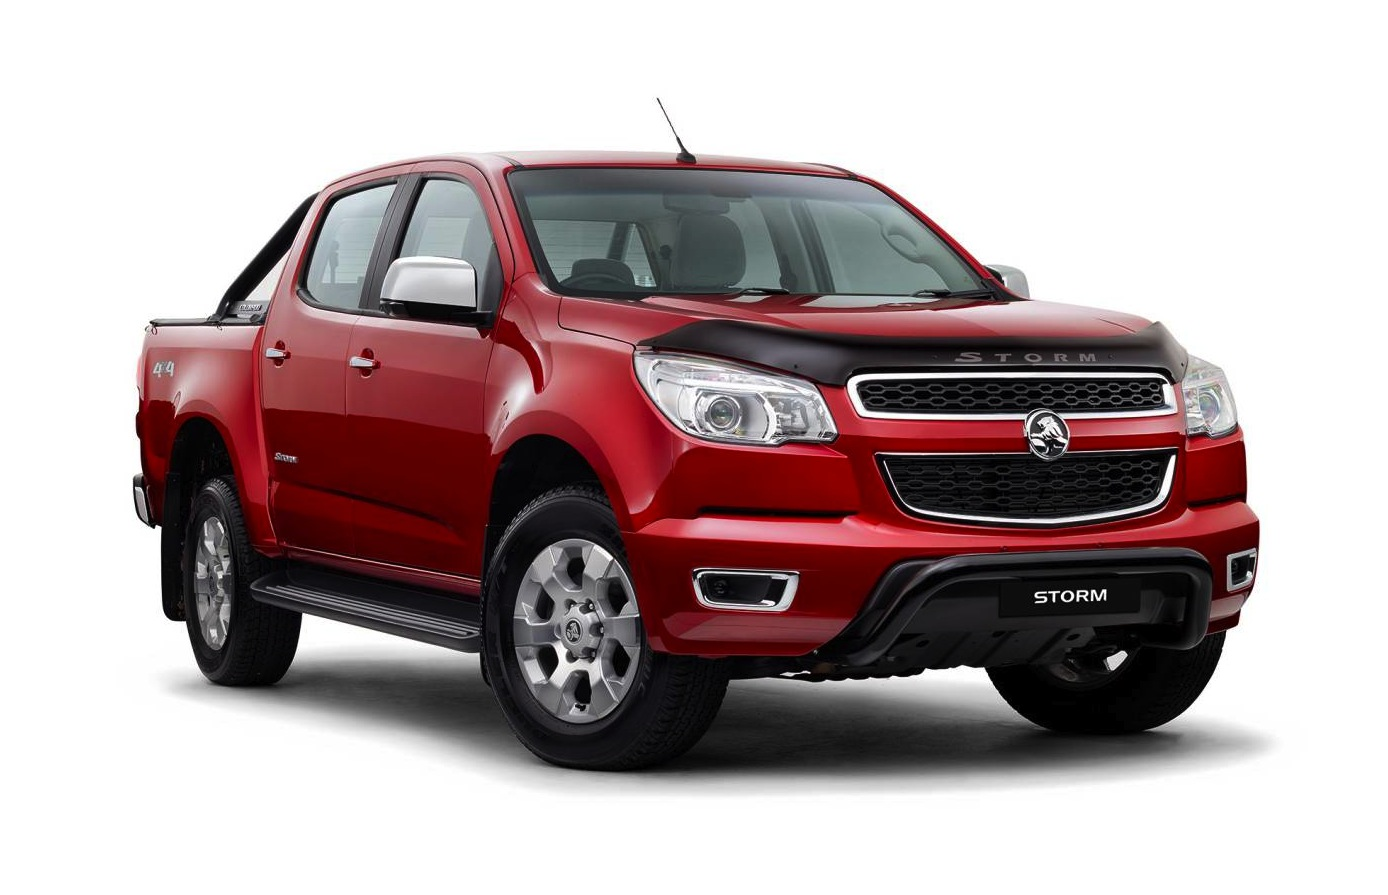 2015 Holden Colorado Storm Special Is Back From 51 490